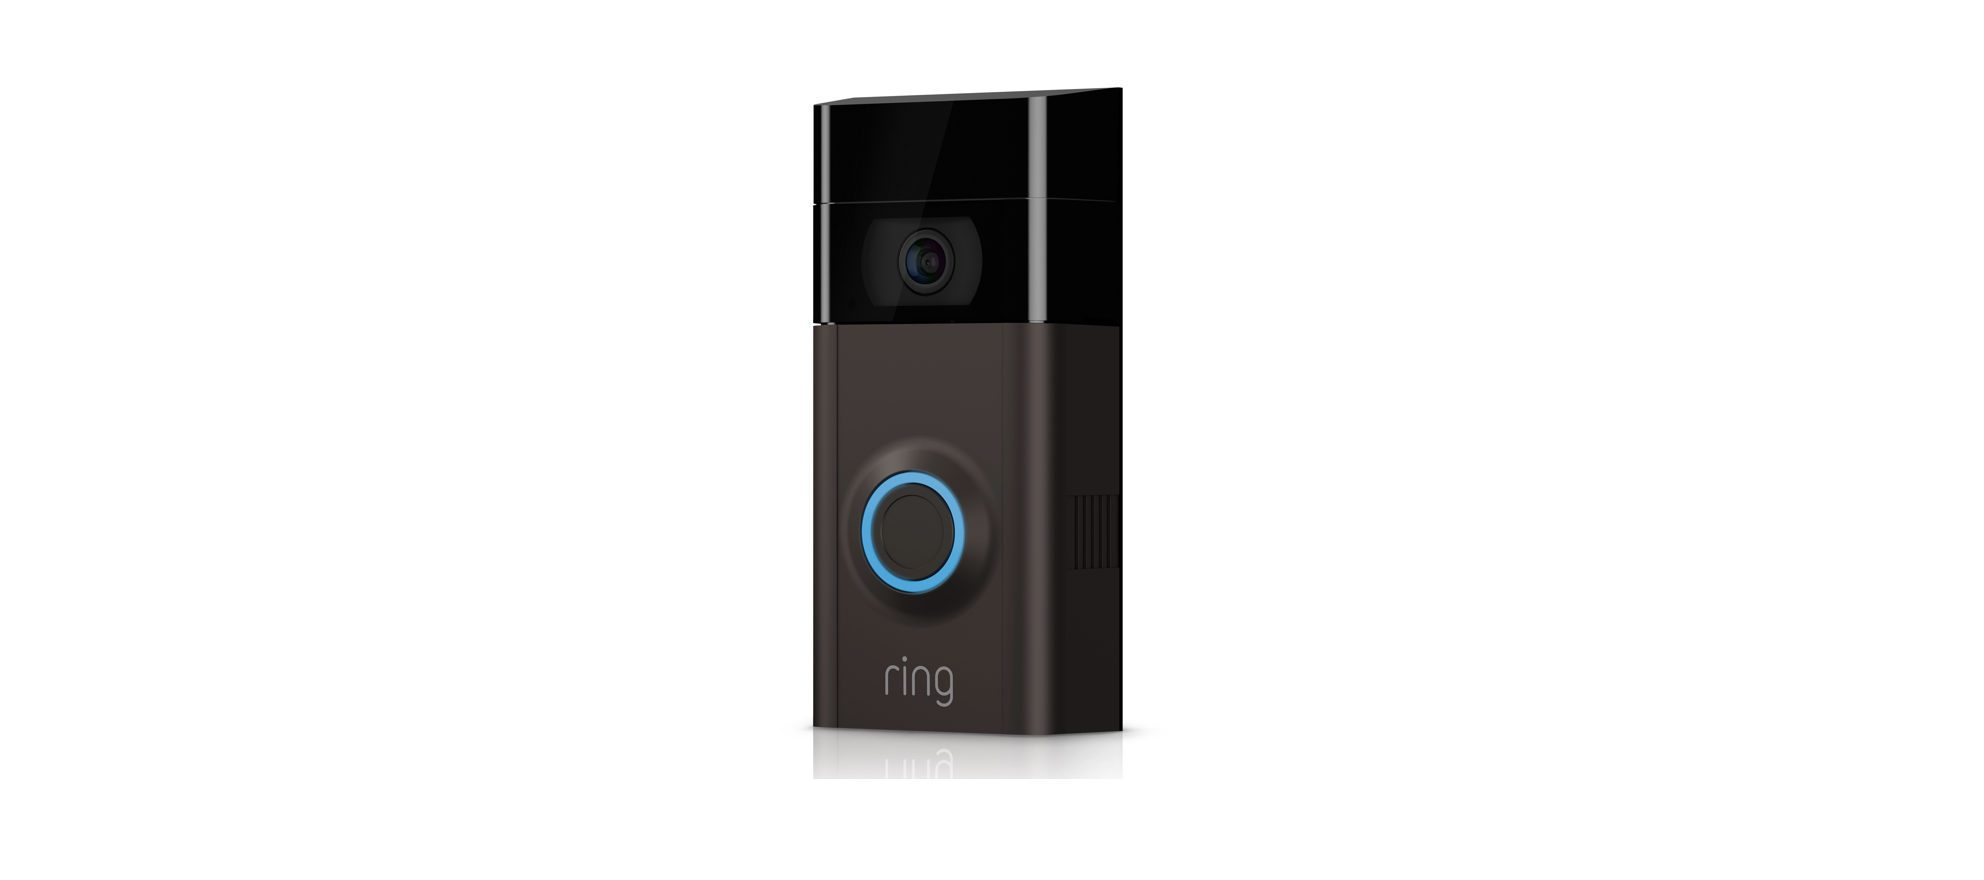 Amazon's Smart Doorbell Company Ring Raises Privacy Concerns